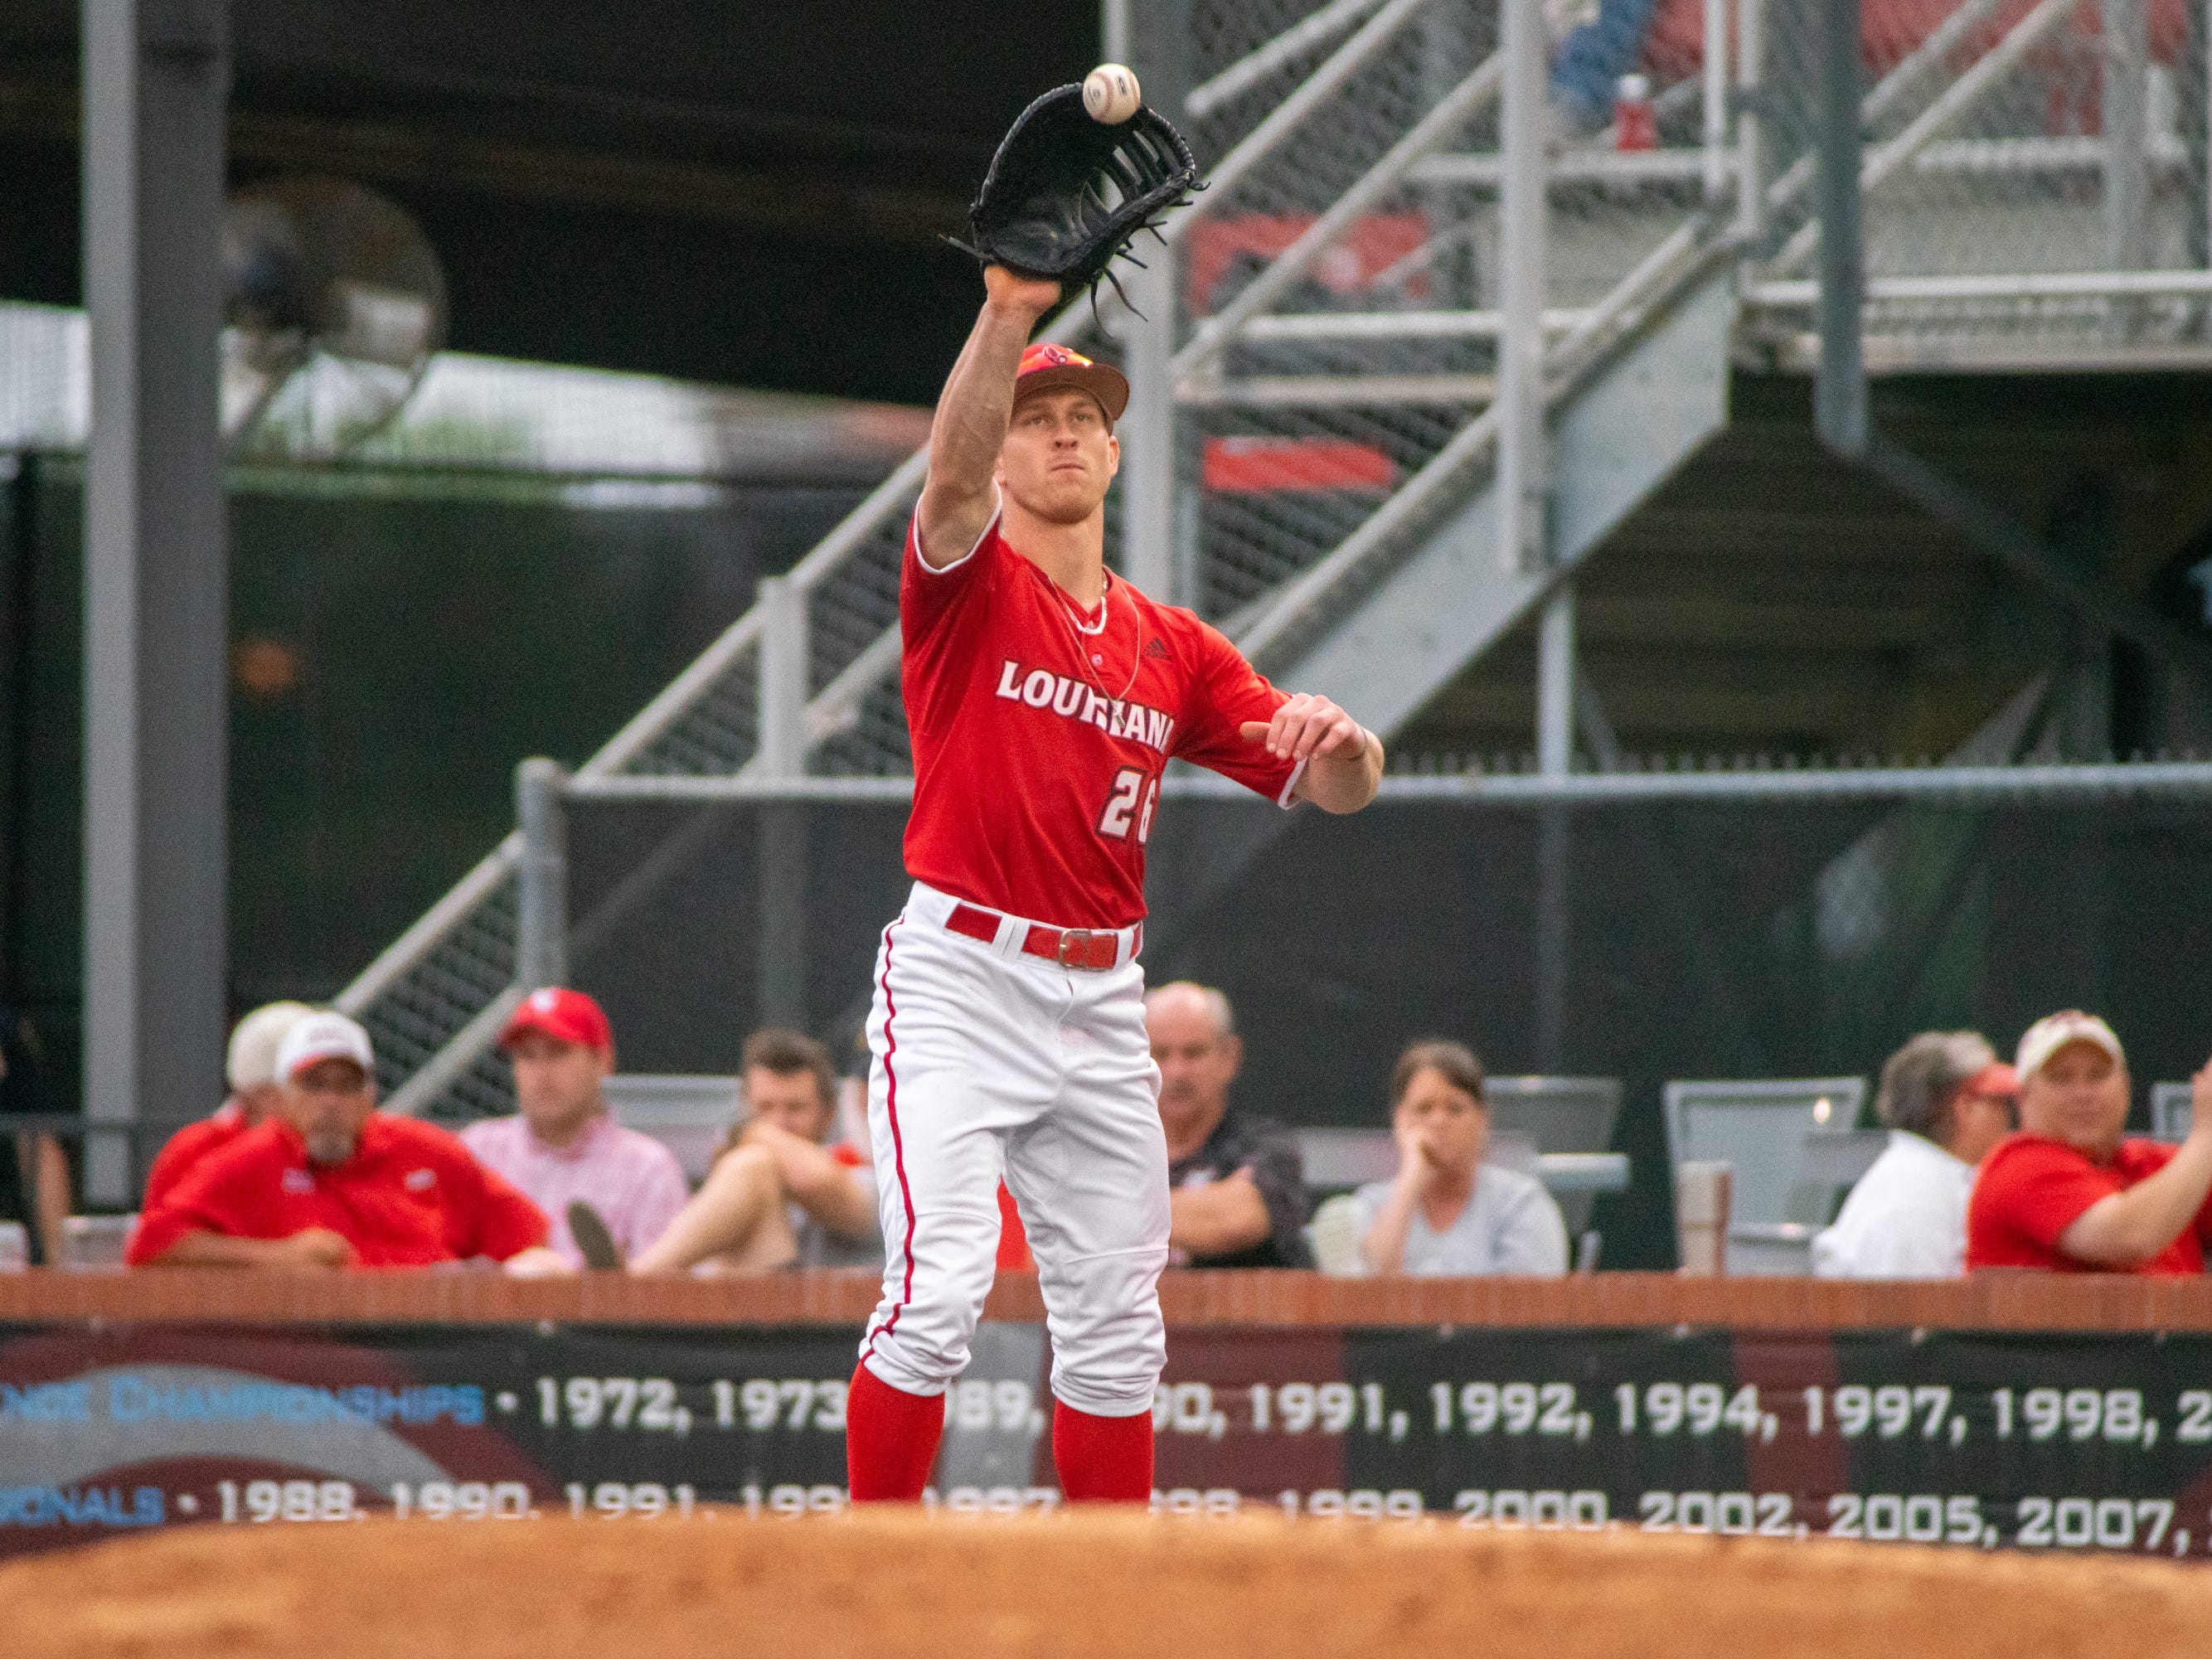 """UL's Daniel Lahare makes a catch at first base to get the runner out as the Ragin' Cajuns take on the South Alabama Jaguars at M.L. """"Tigue"""" Moore Field on Friday, April 4, 2019."""